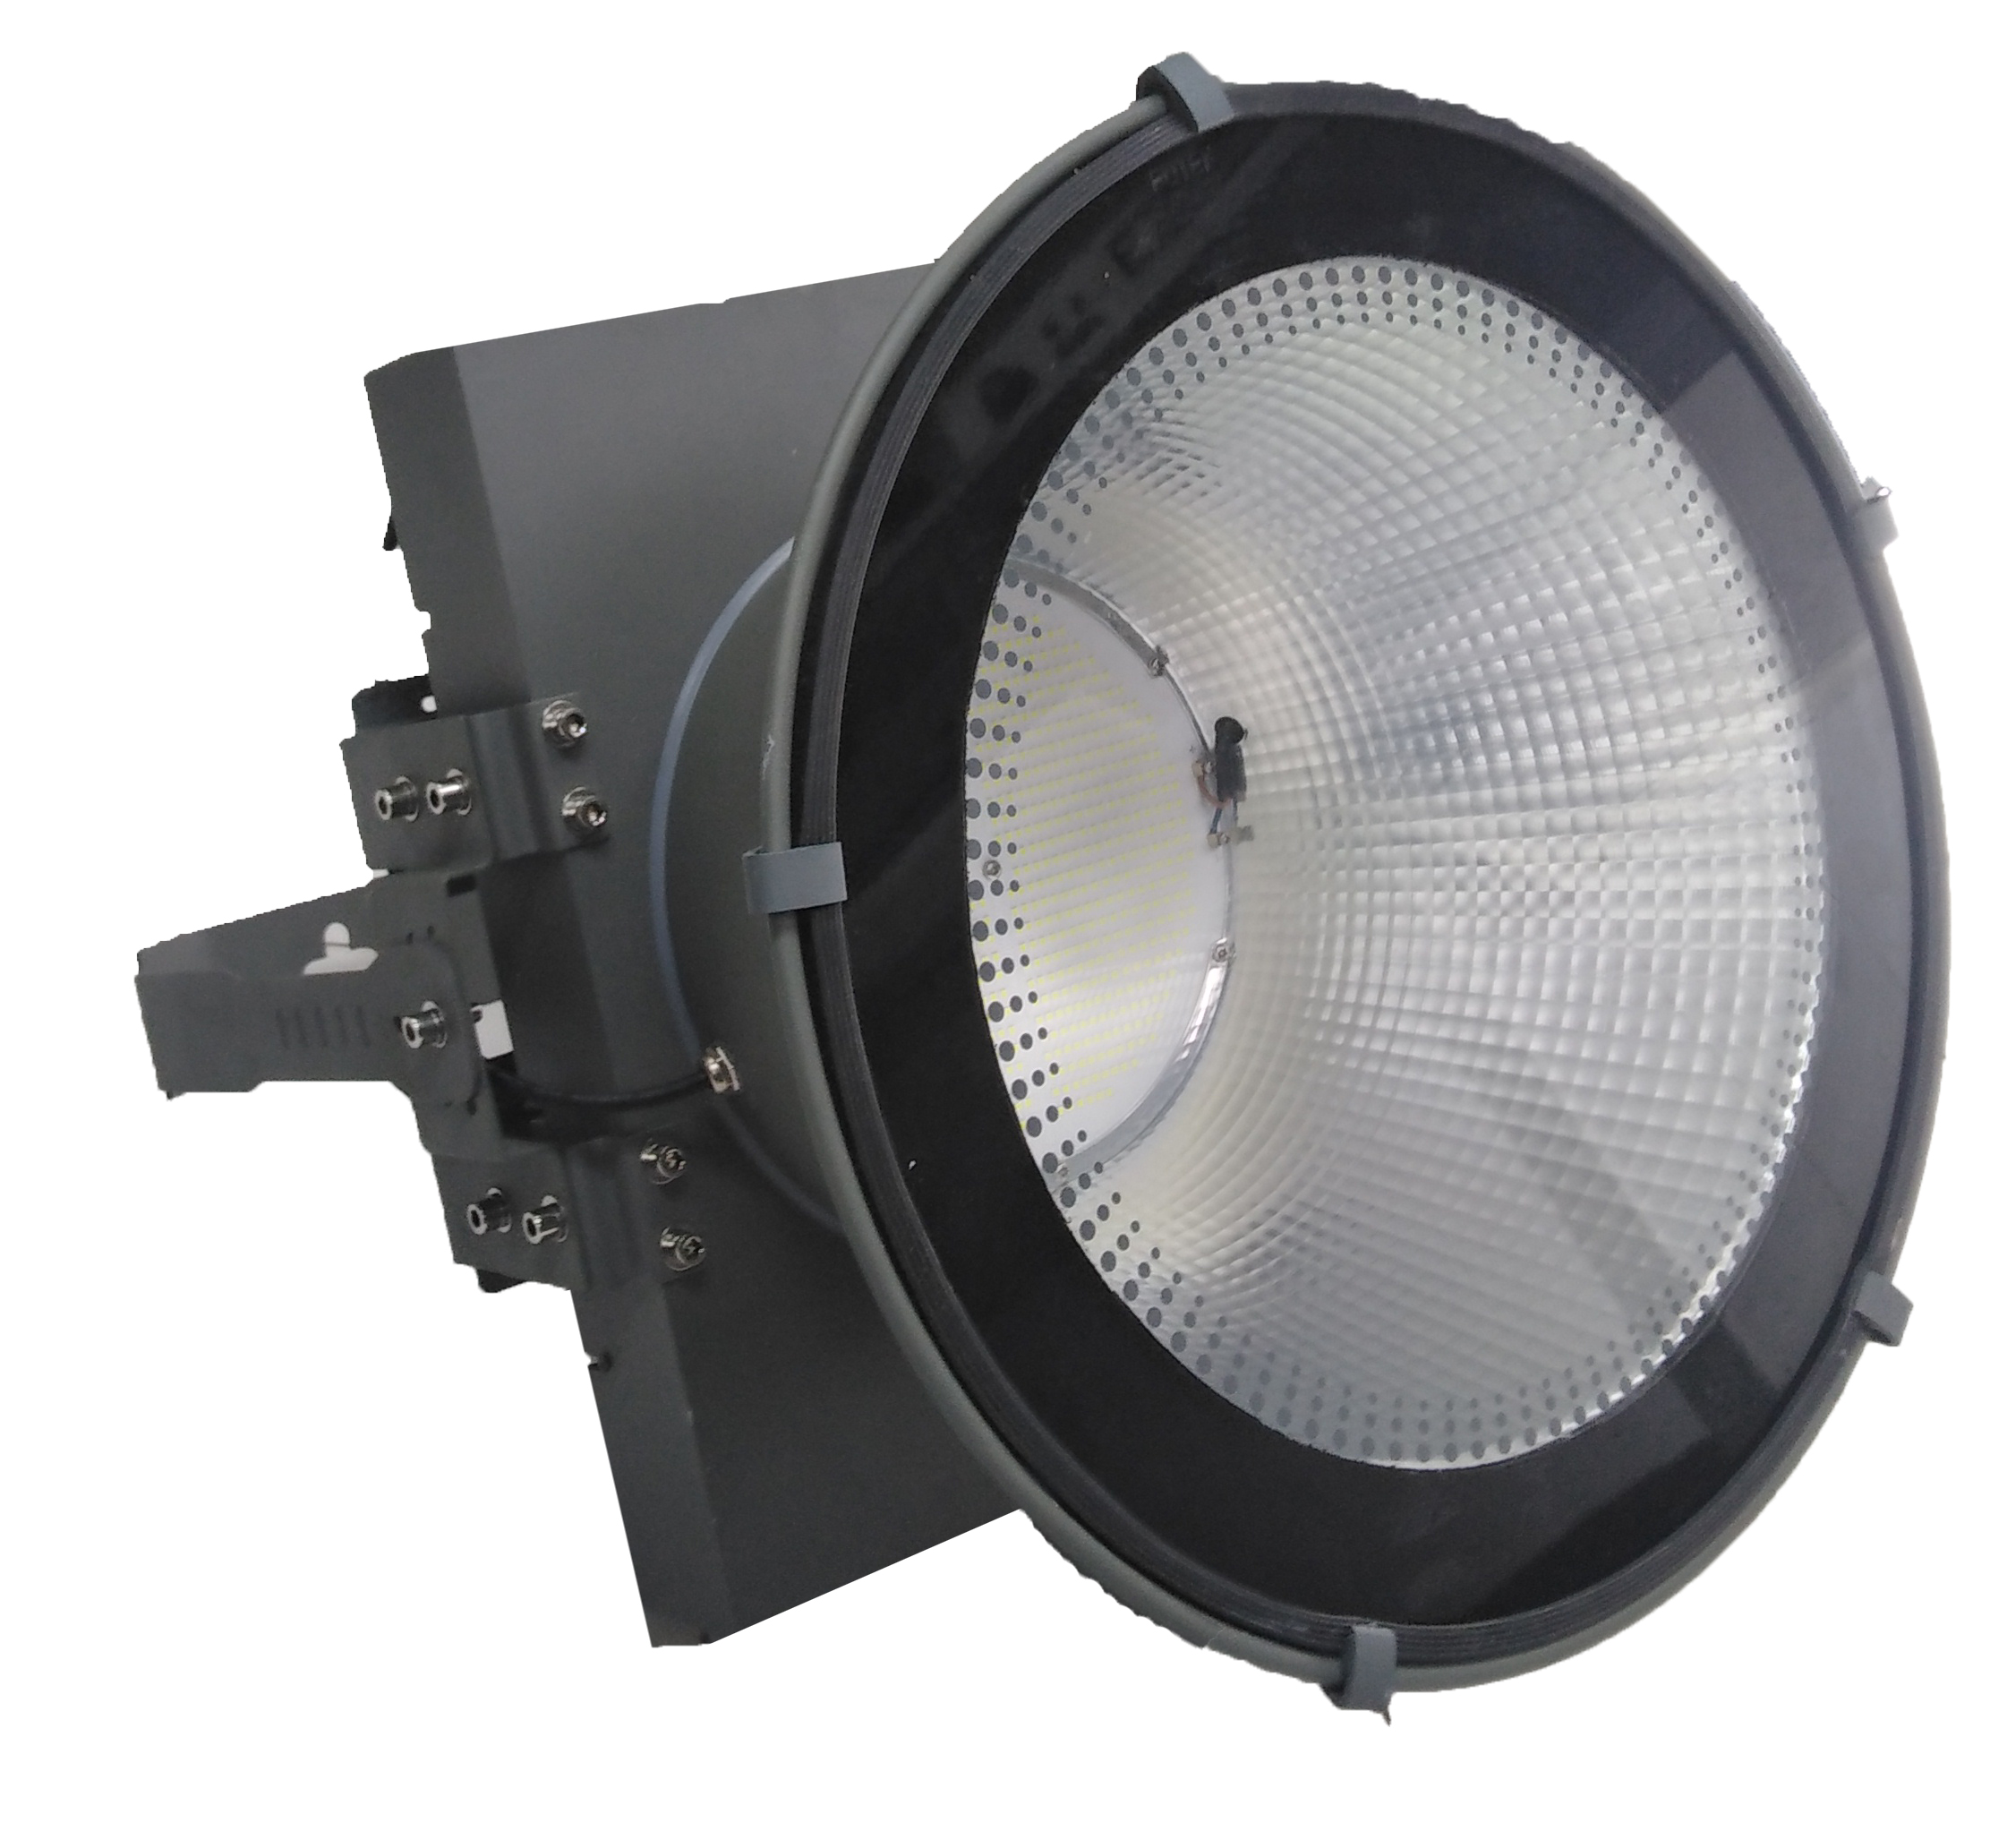 LED Floodlight-HI 300-600 w